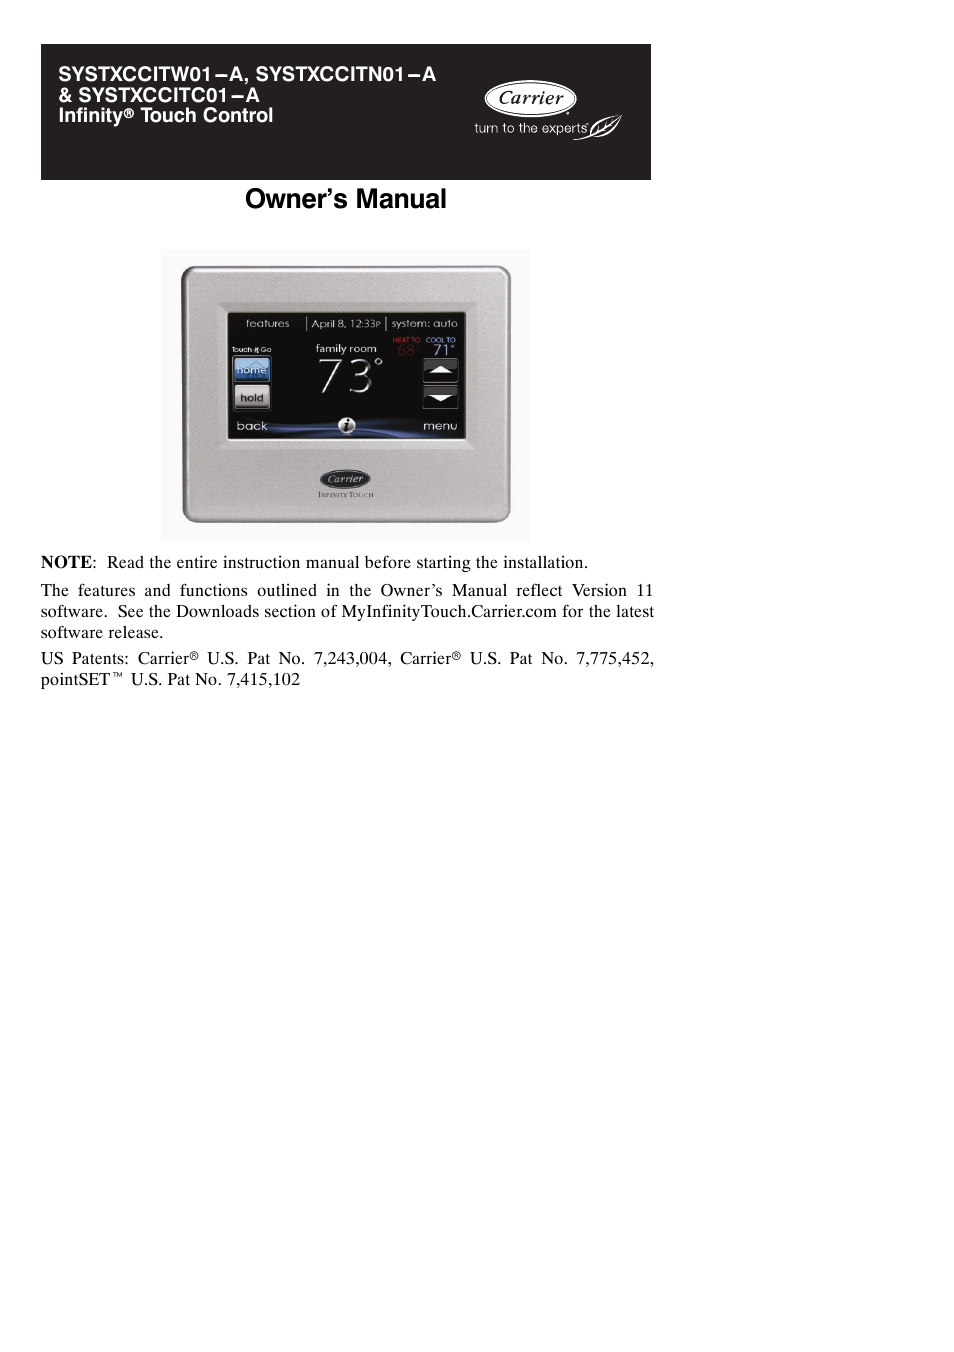 Carrier Infinity Thermostat Wiring Diagram S1 Data Diagrams Honeywell T8011r User Manual Product Guide Systxccitc01 A 68 Pages Also For Rh Manualsdir Com Heat Pump